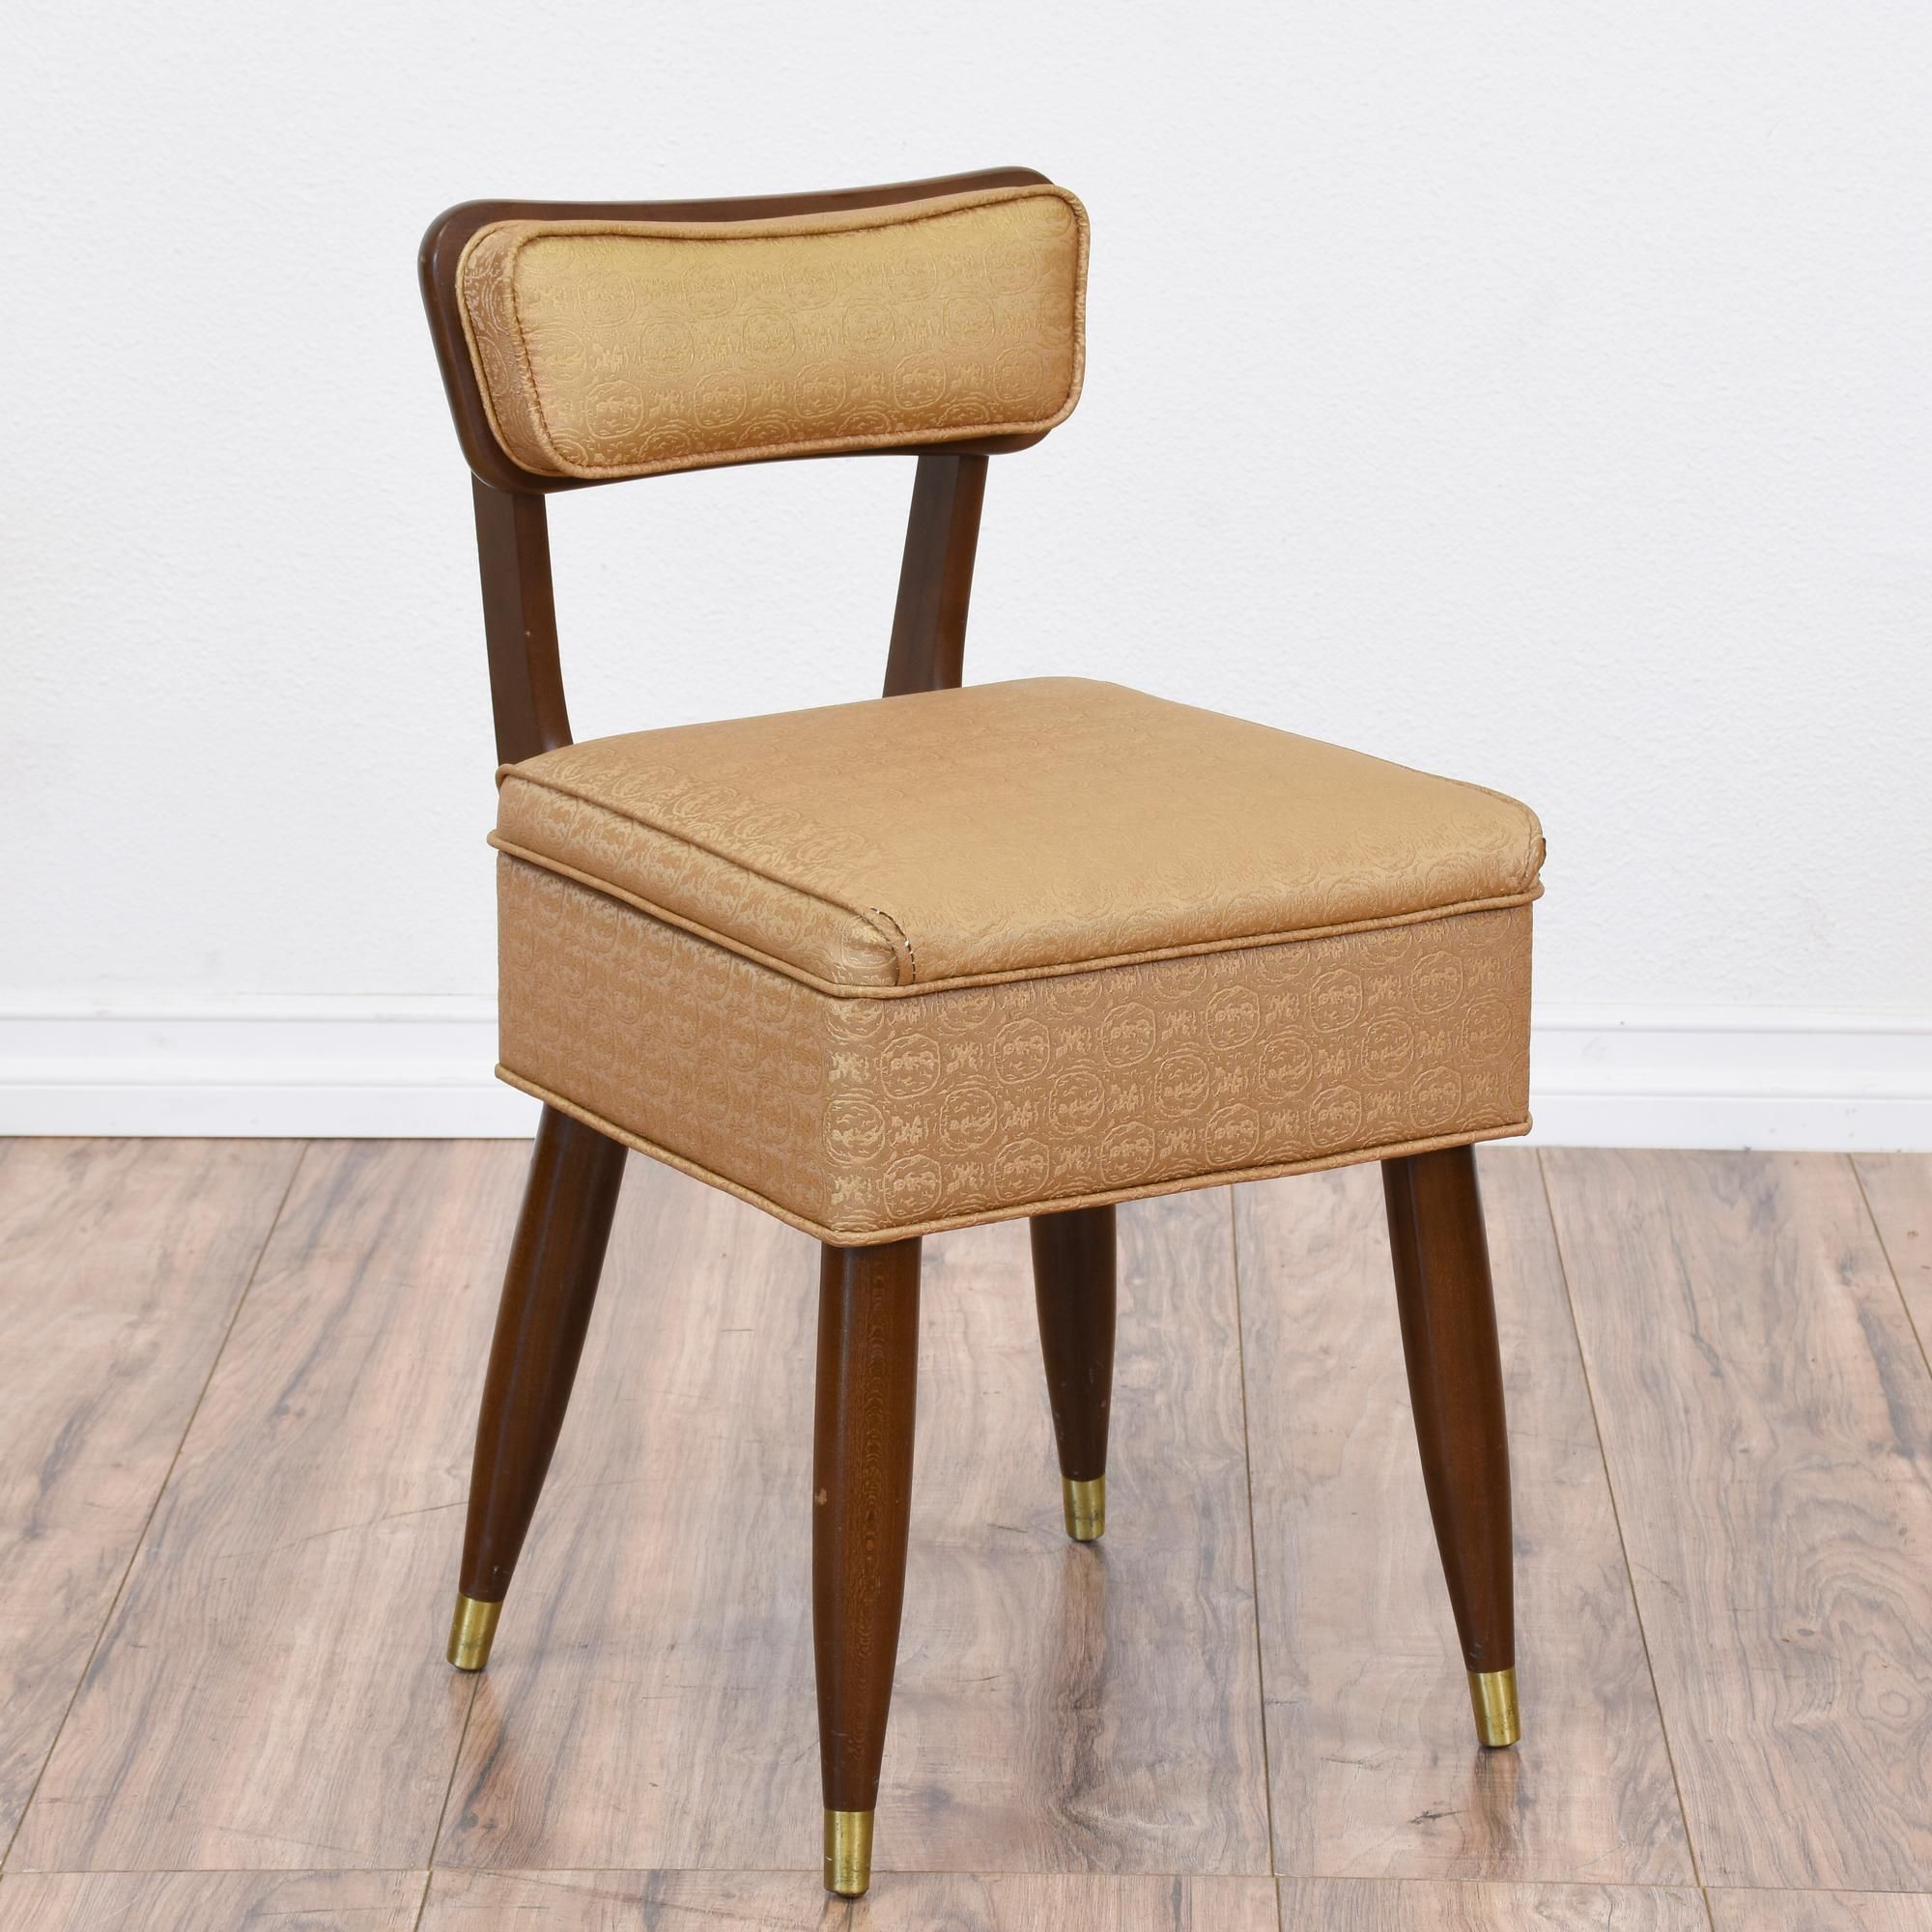 This mid century modern chair is upholstered in a durable beige